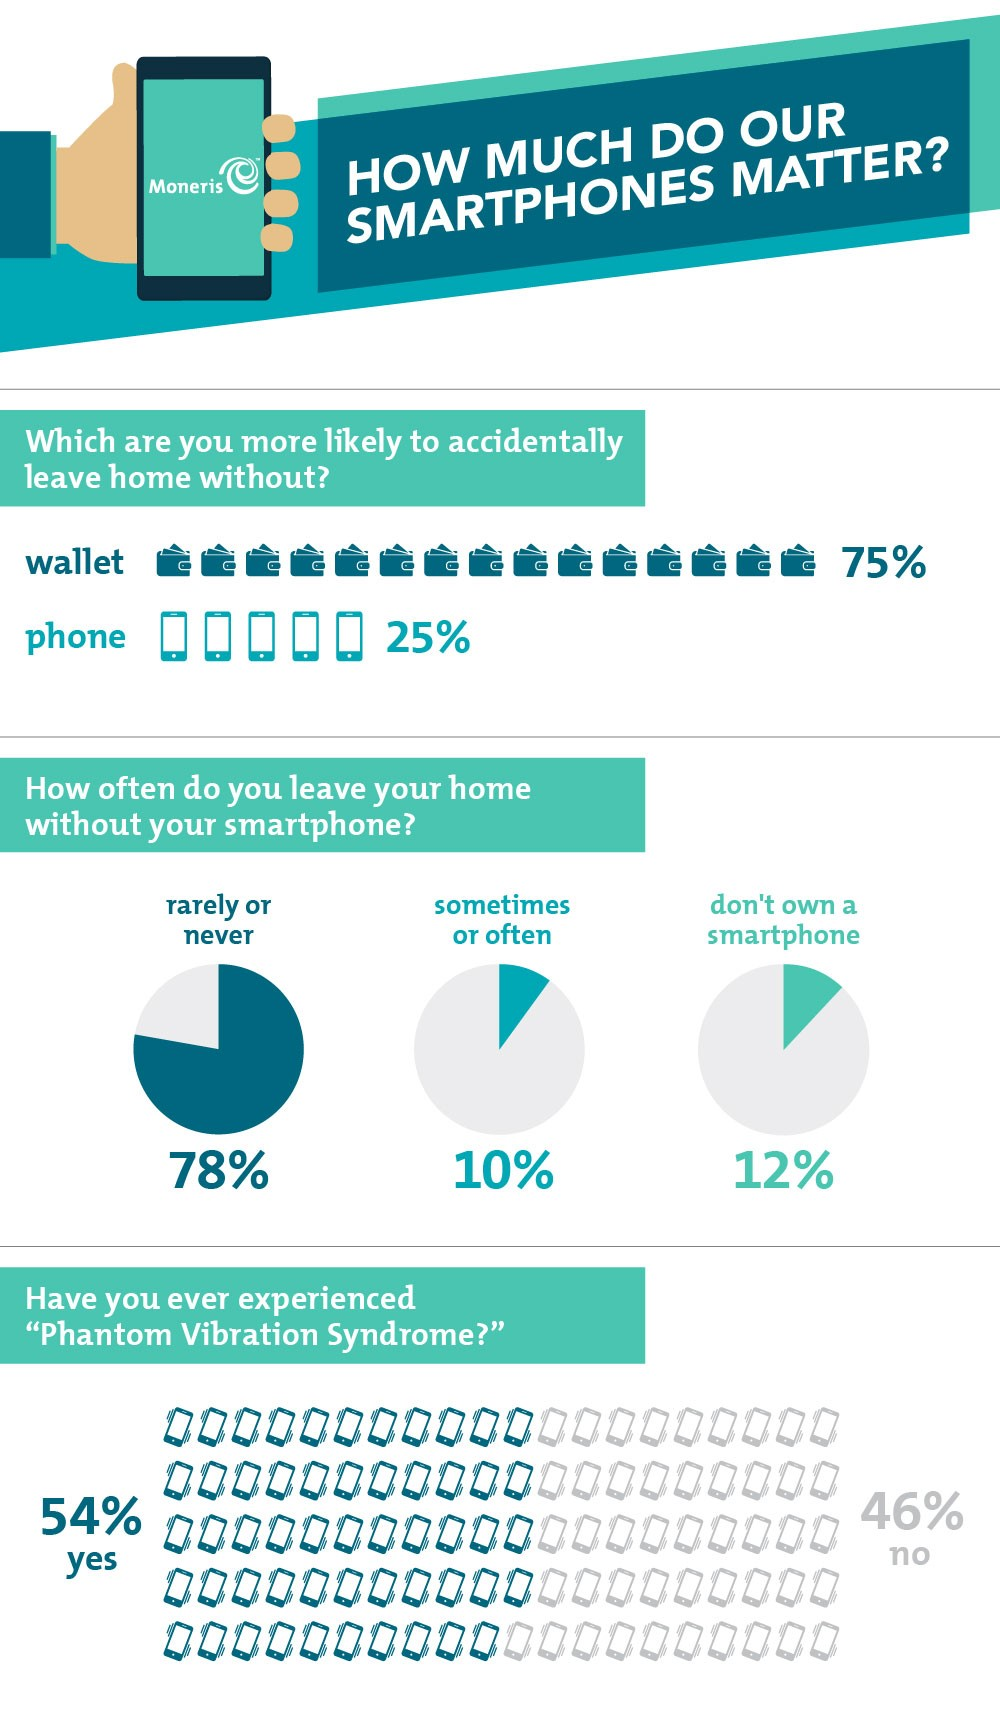 How-Much-Do-Our-Smartphones-Matter